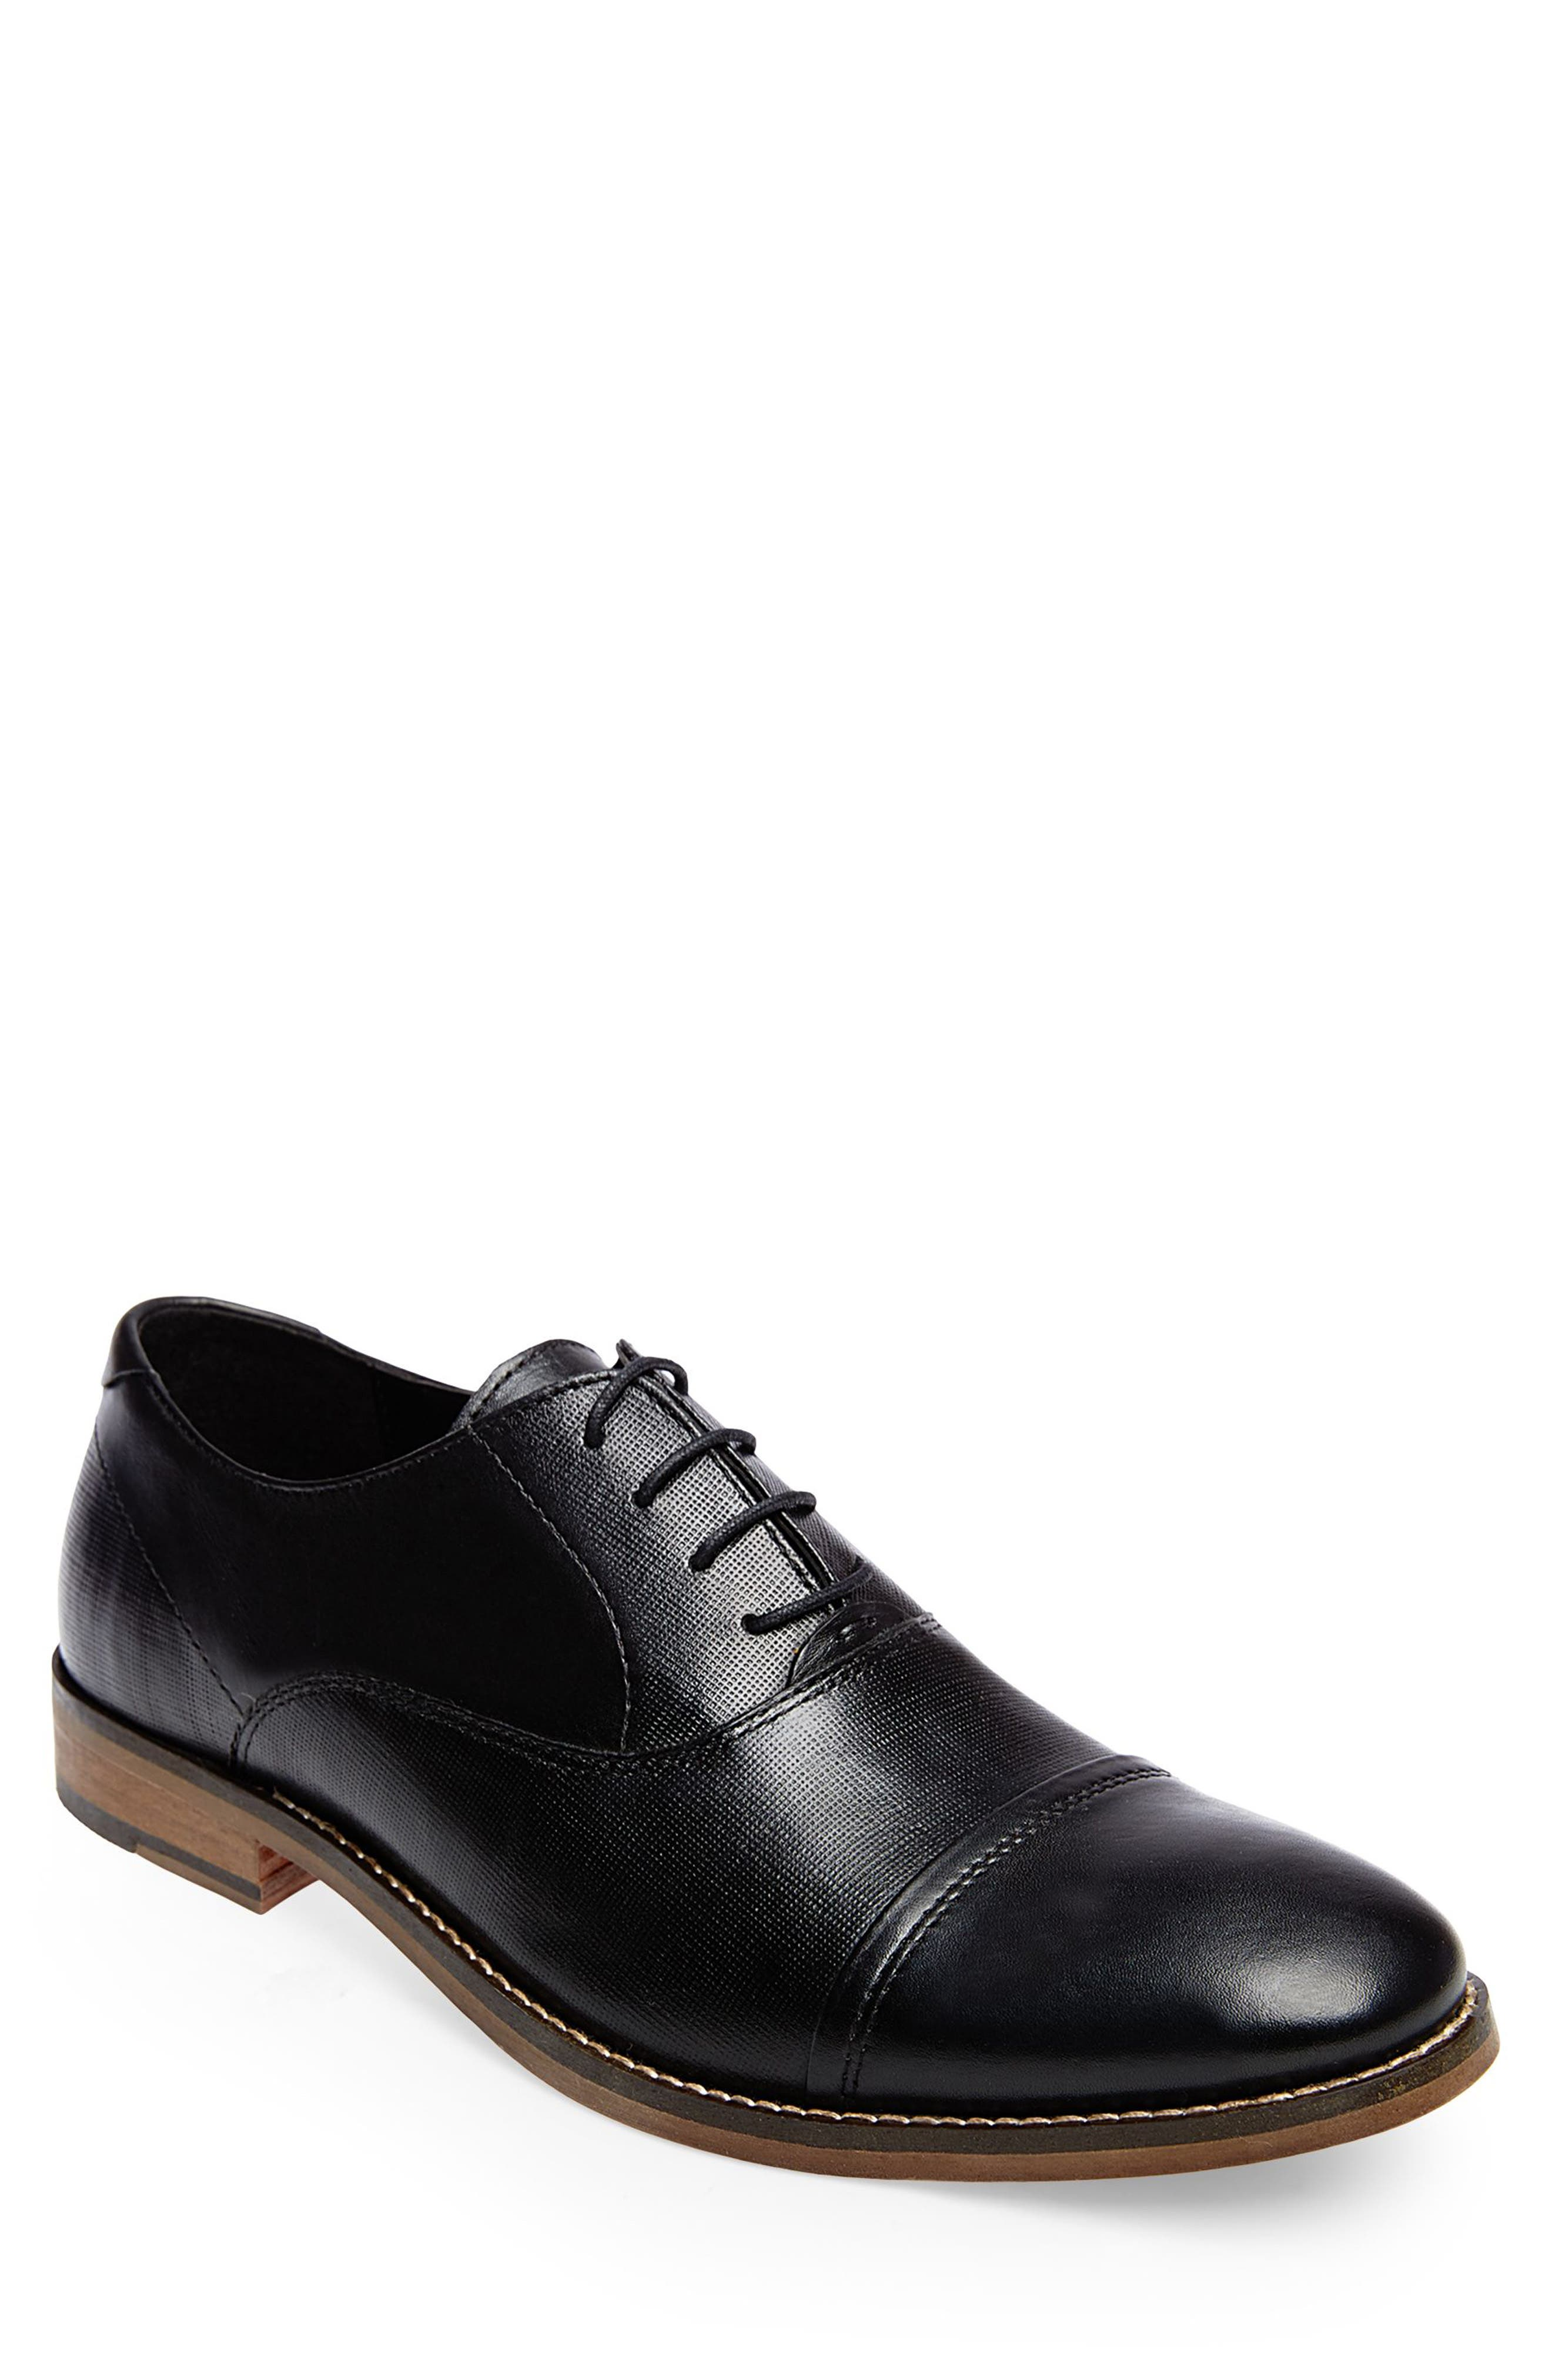 Finnich Textured Cap Toe Oxford,                             Main thumbnail 1, color,                             Black